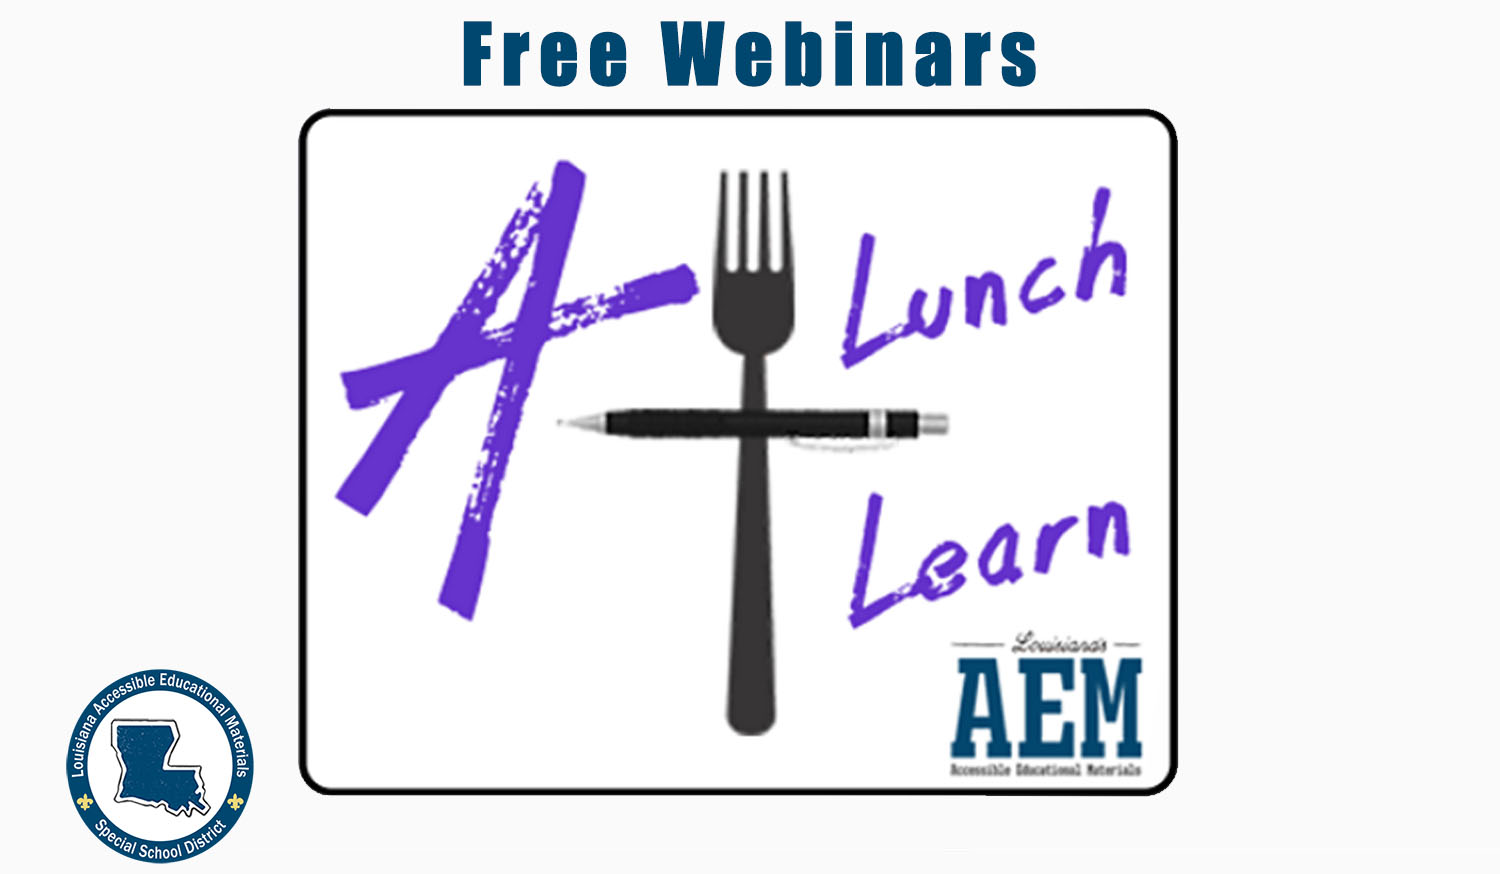 Click to access the free webinar schedule via eventbrite